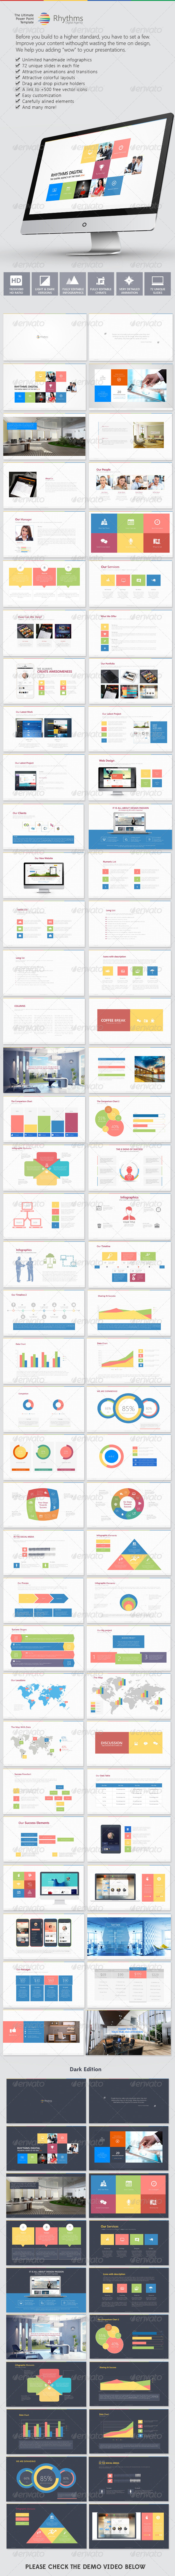 GraphicRiver Rhythms Ultimate Presentation Template 7586856